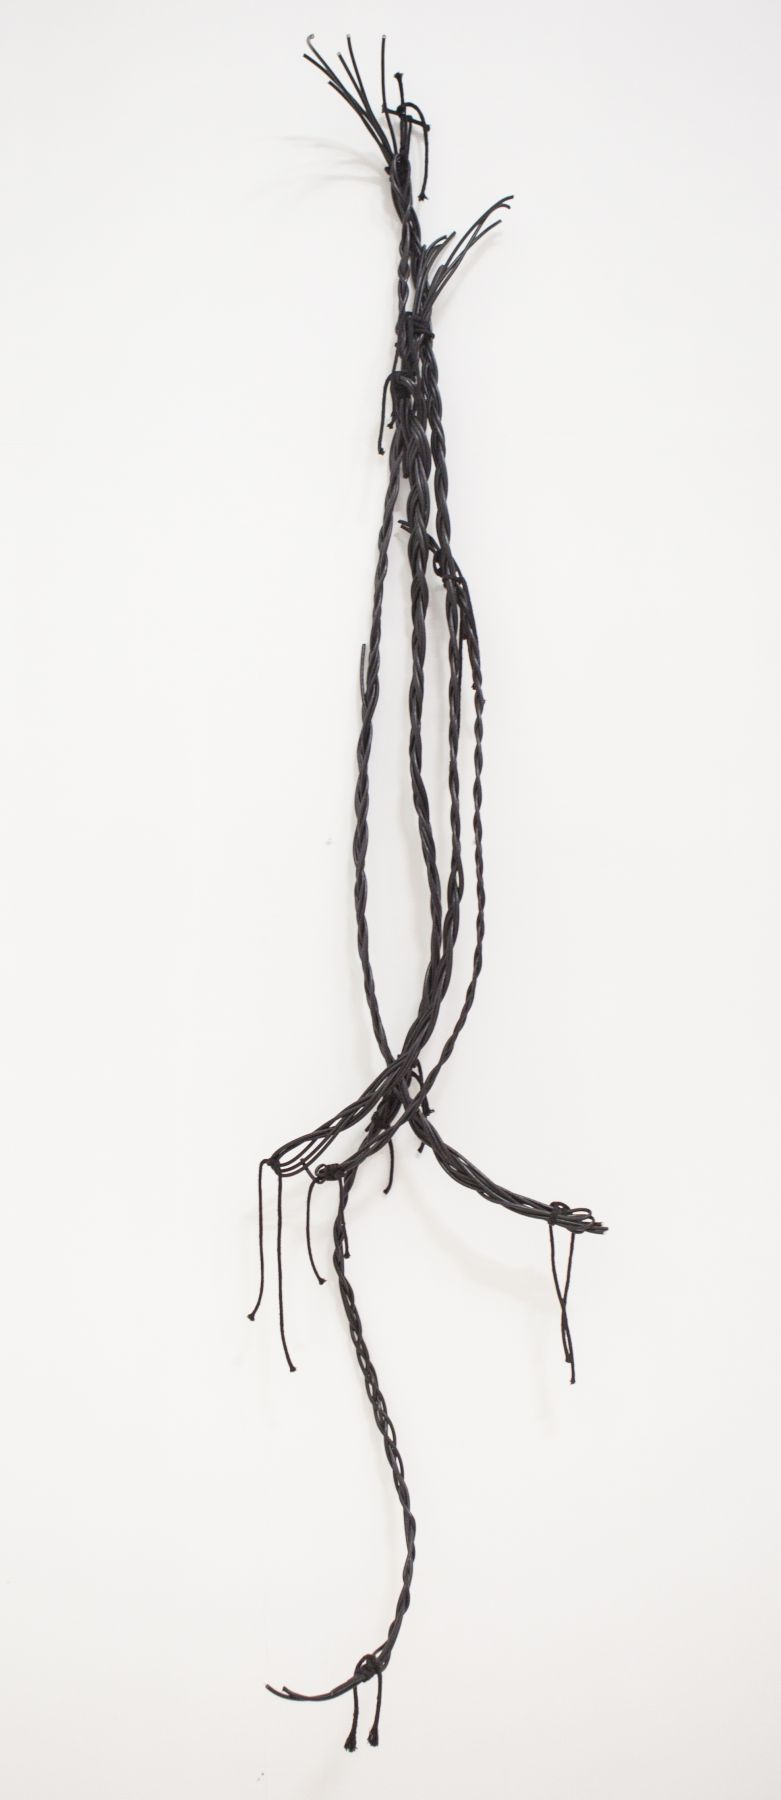 Hassan Sharif, Weaving No 47, 2015